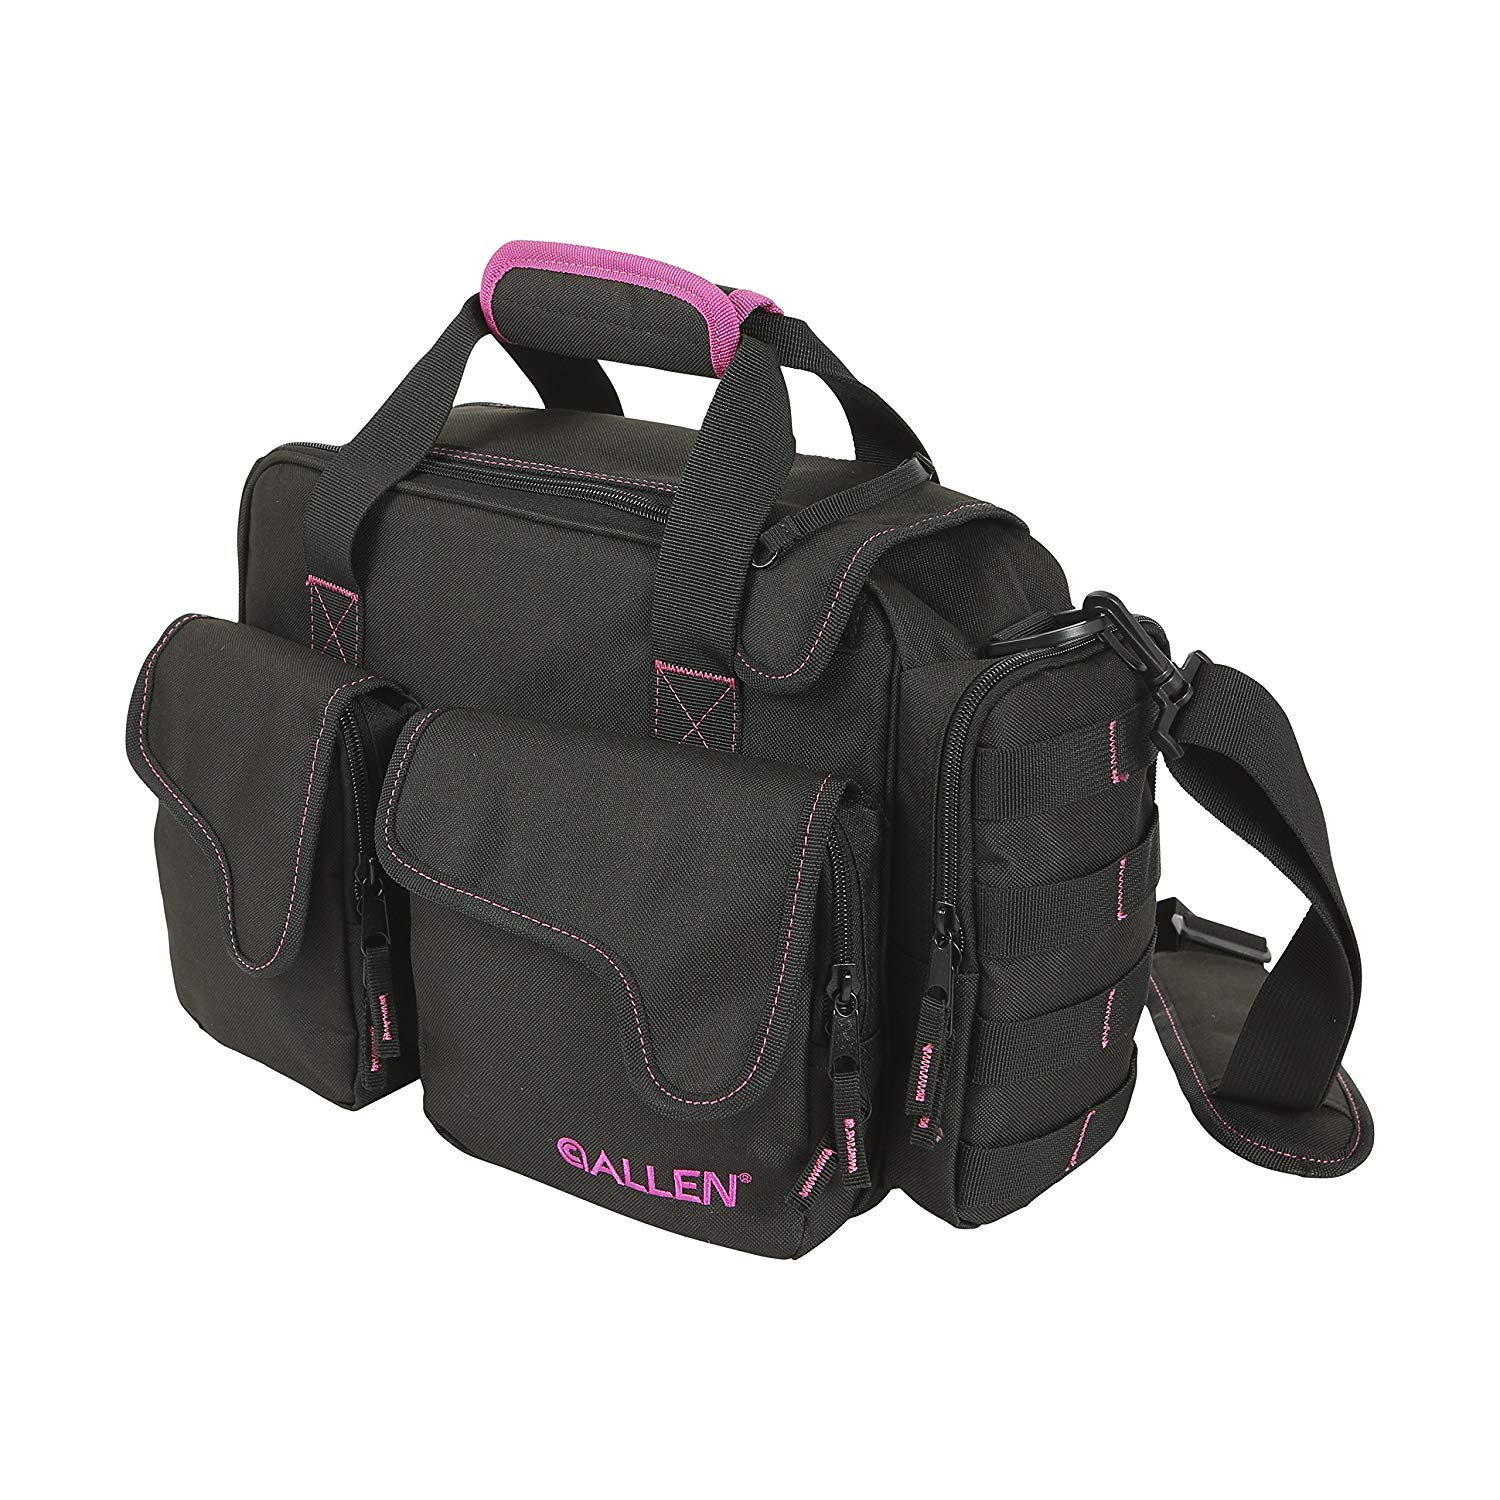 Allen Compact Shooting Range Bag for Women, This Range Bag Comes in Black/Pink (2 Units) by Allen Company (Image #1)